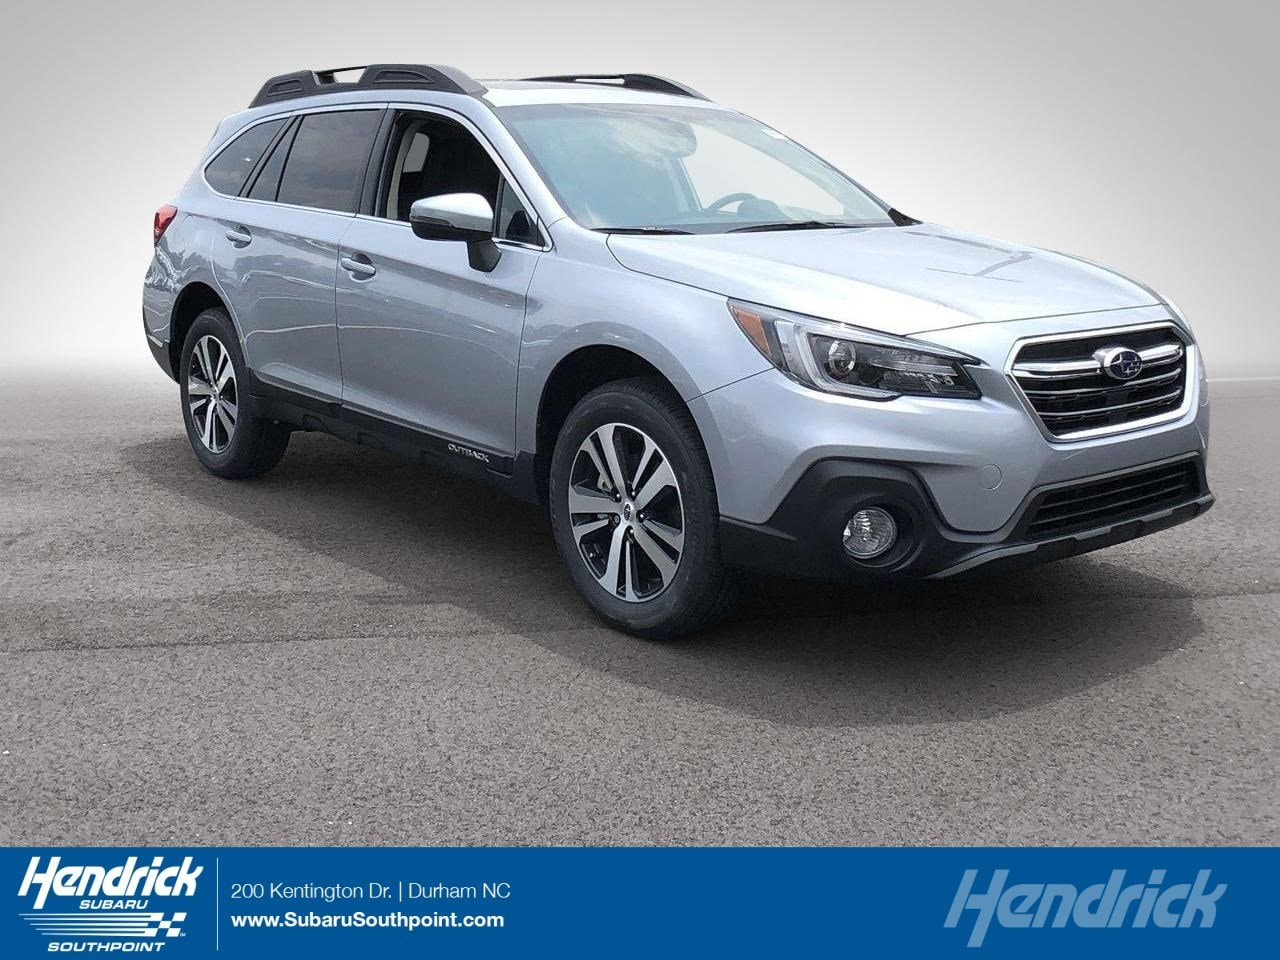 2019 Subaru Outback in Durham - Raleigh | Hendrick Subaru Southpoint